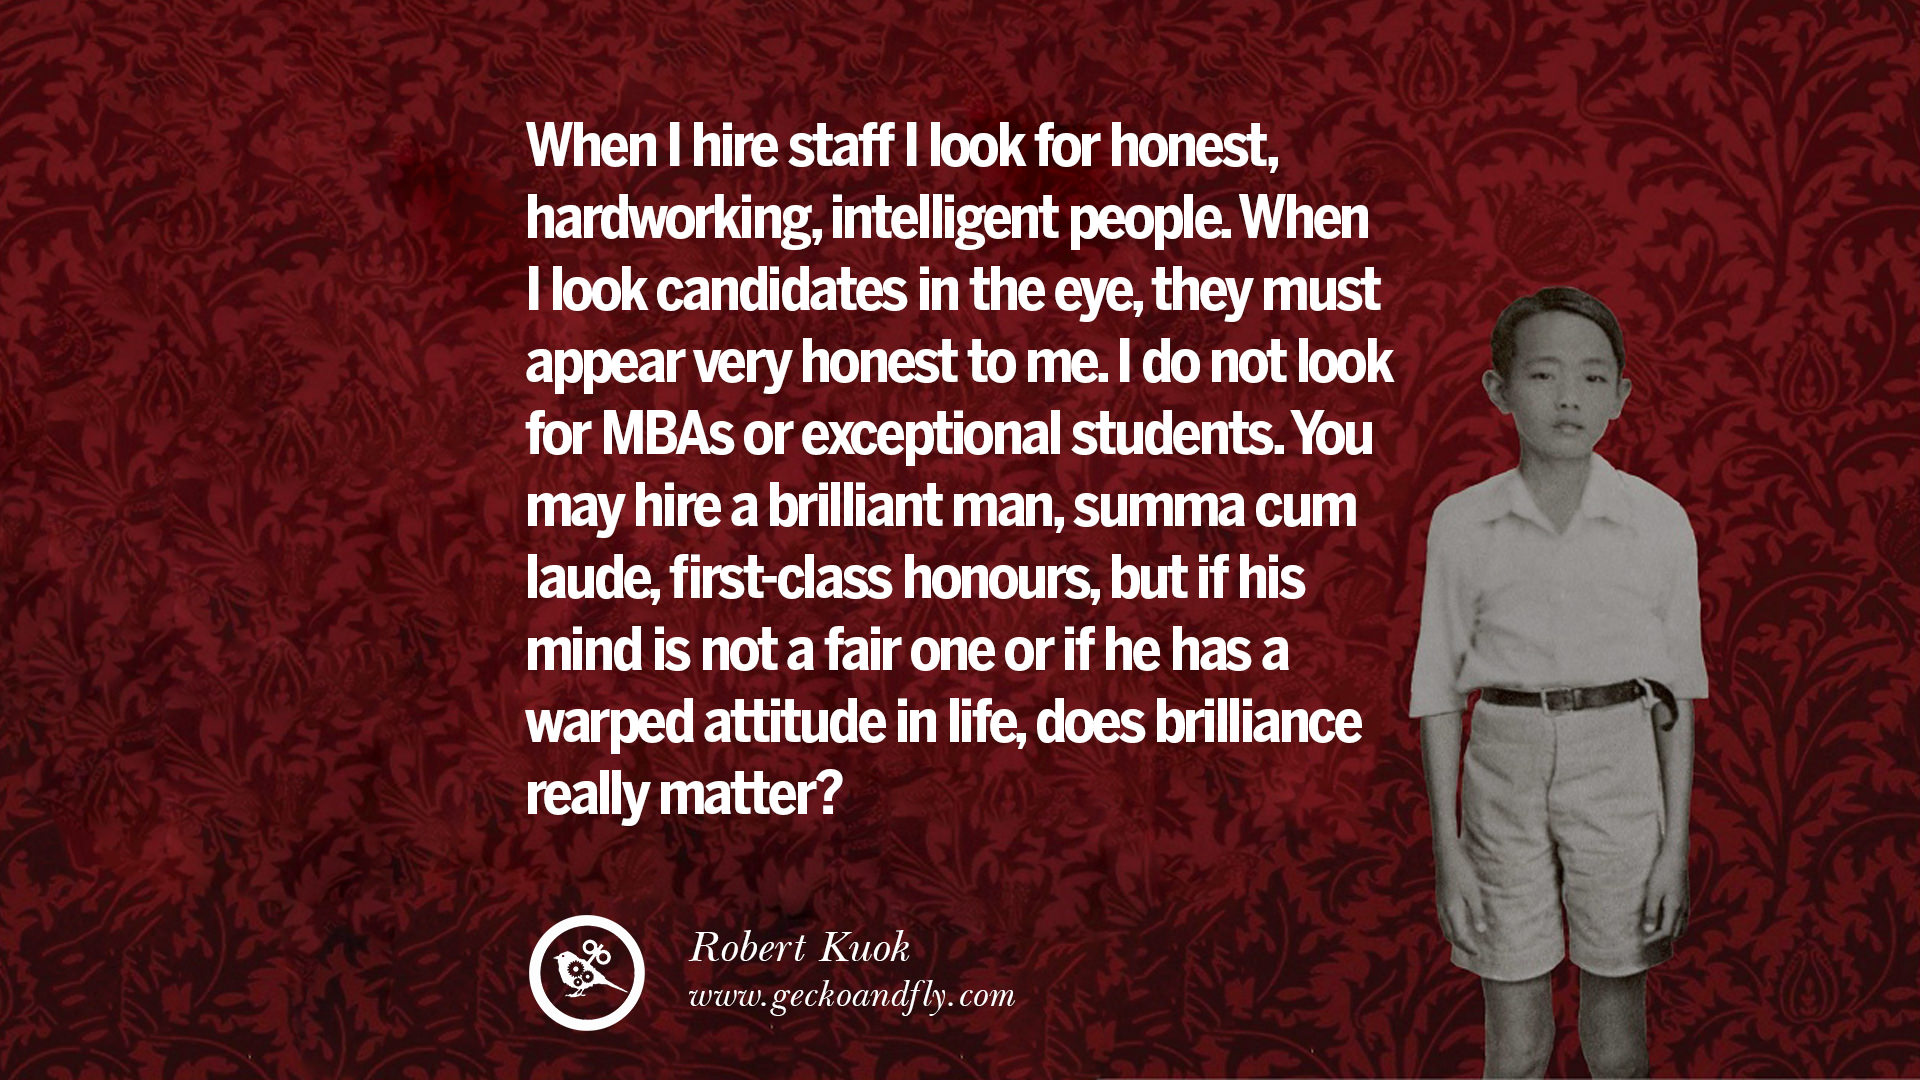 Very Inspiring Quotes About Life 10 Inspiring Robert Kuok Quotes On Business Opportunities And